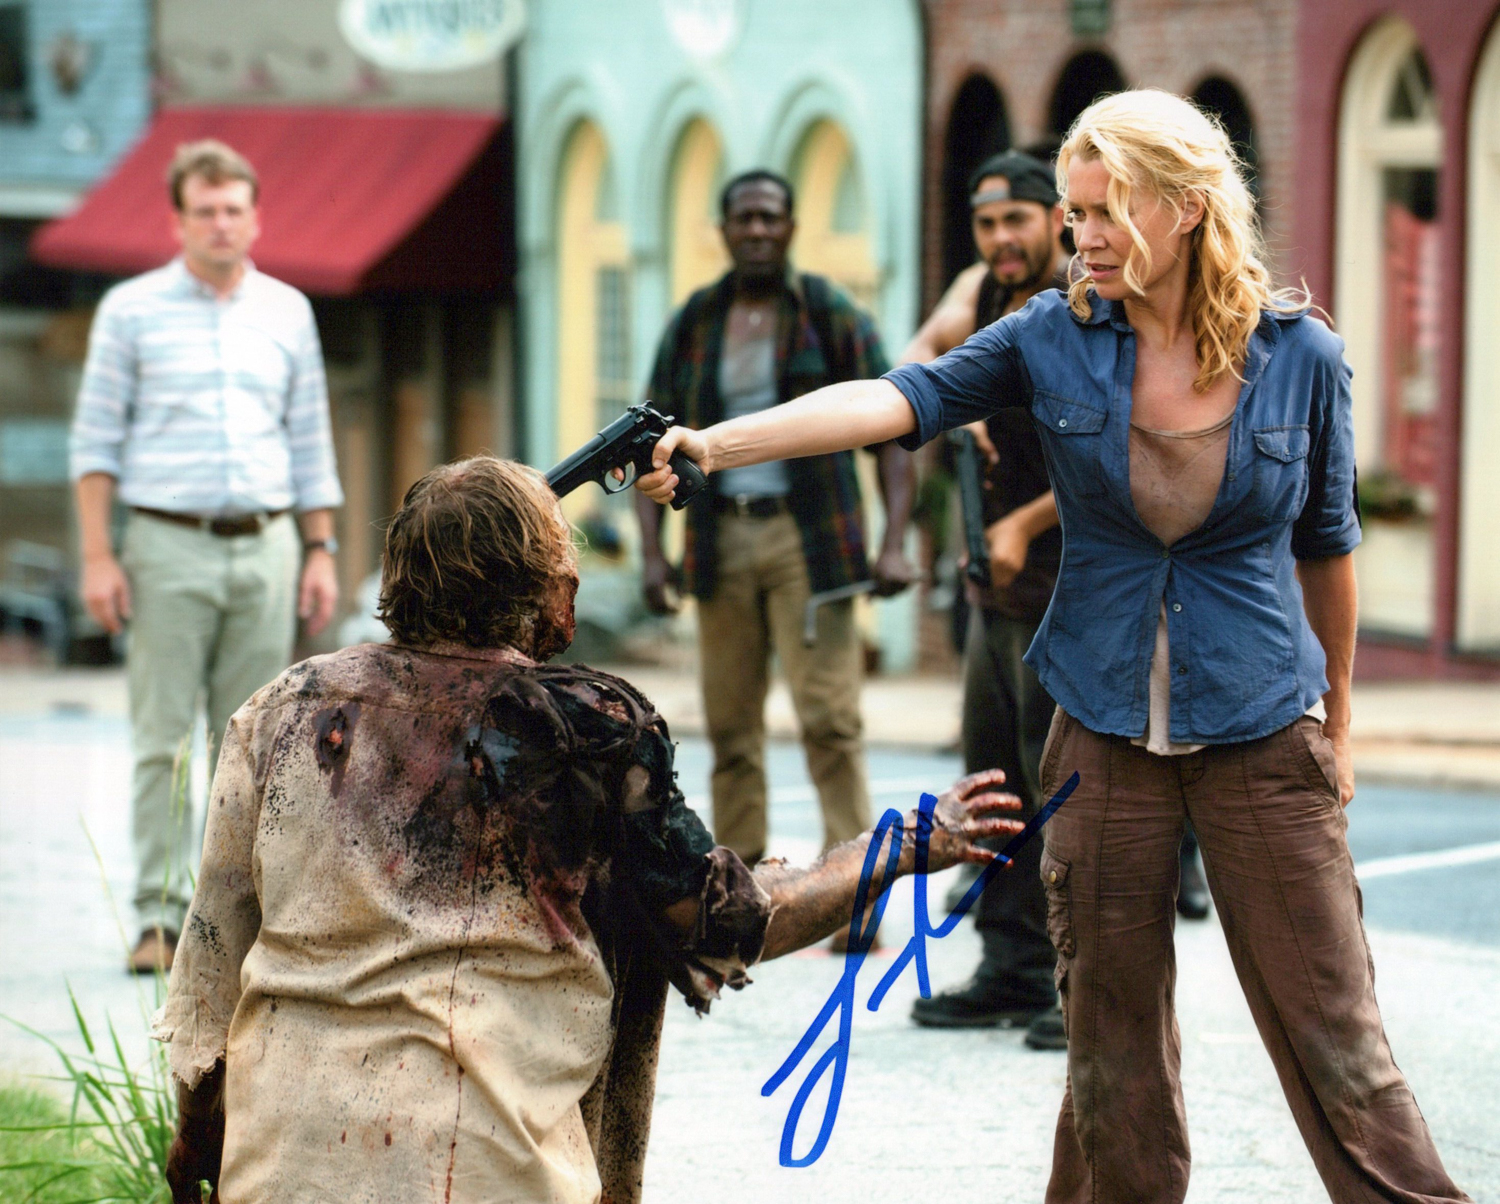 Laurie Holden Original Autogramm auf Foto 20x25cm - The Walking Dead